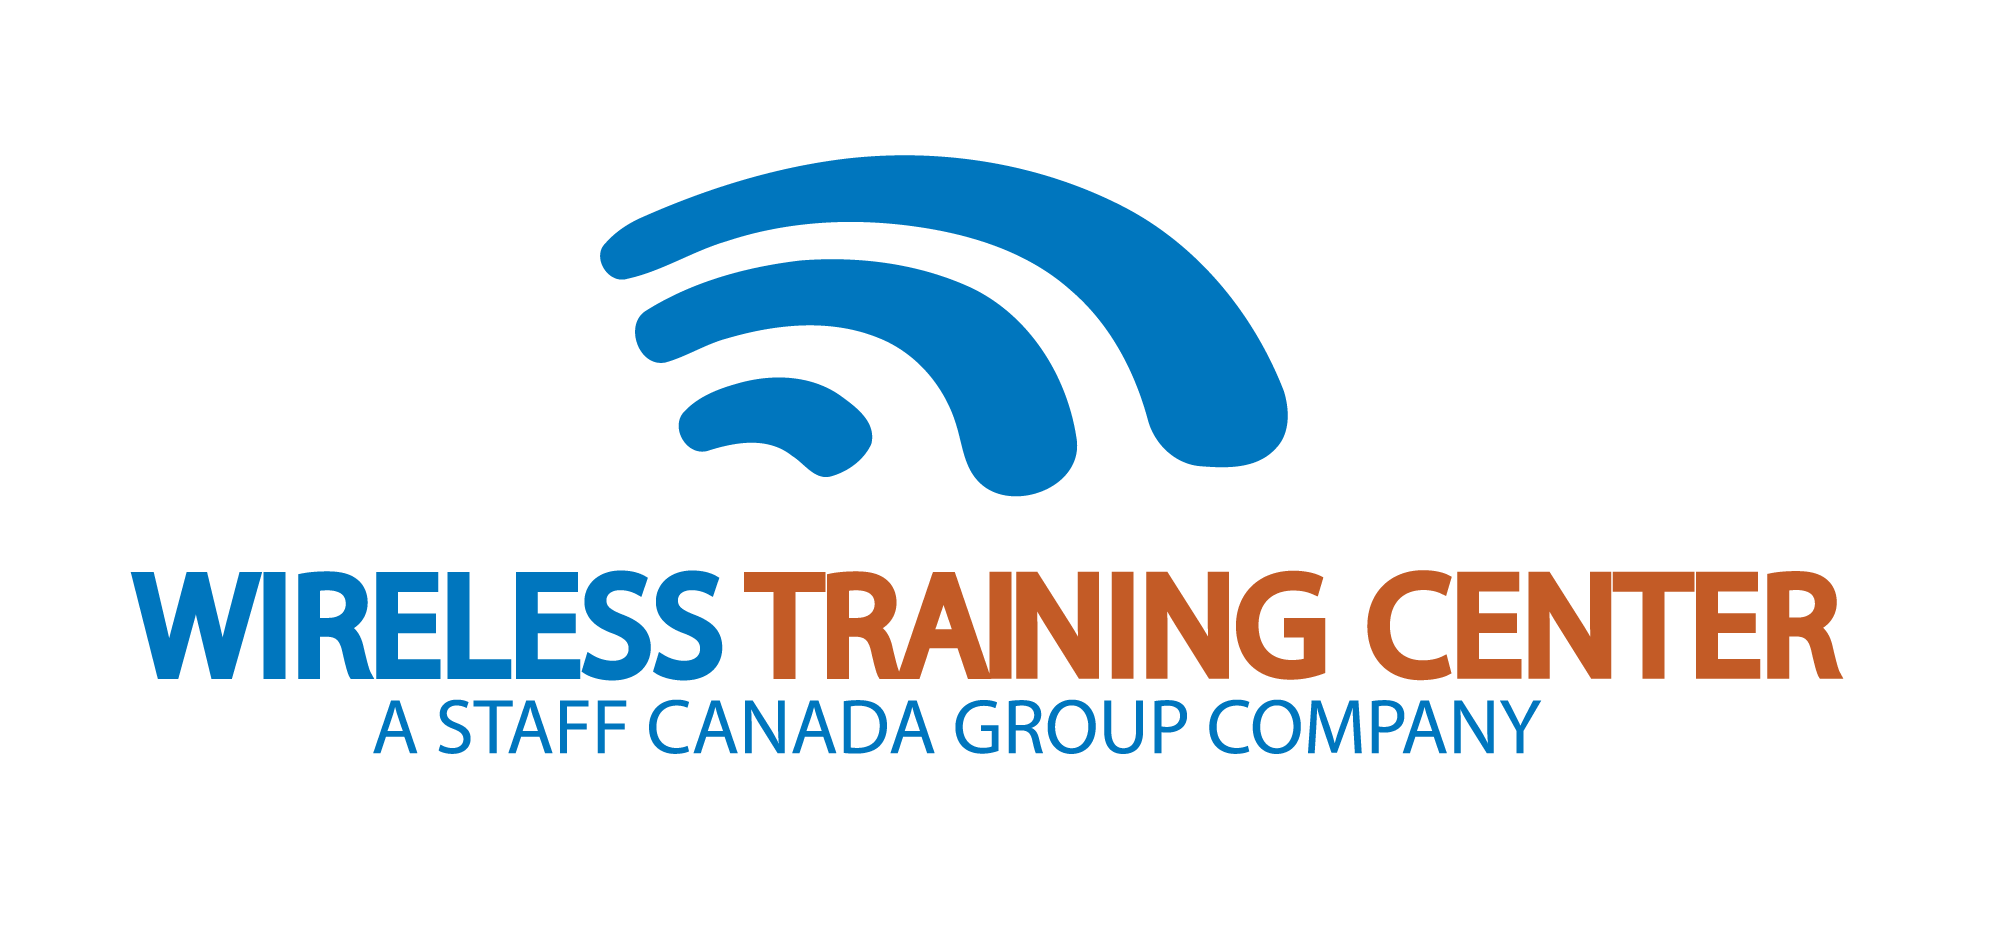 More about Wireless Training Center